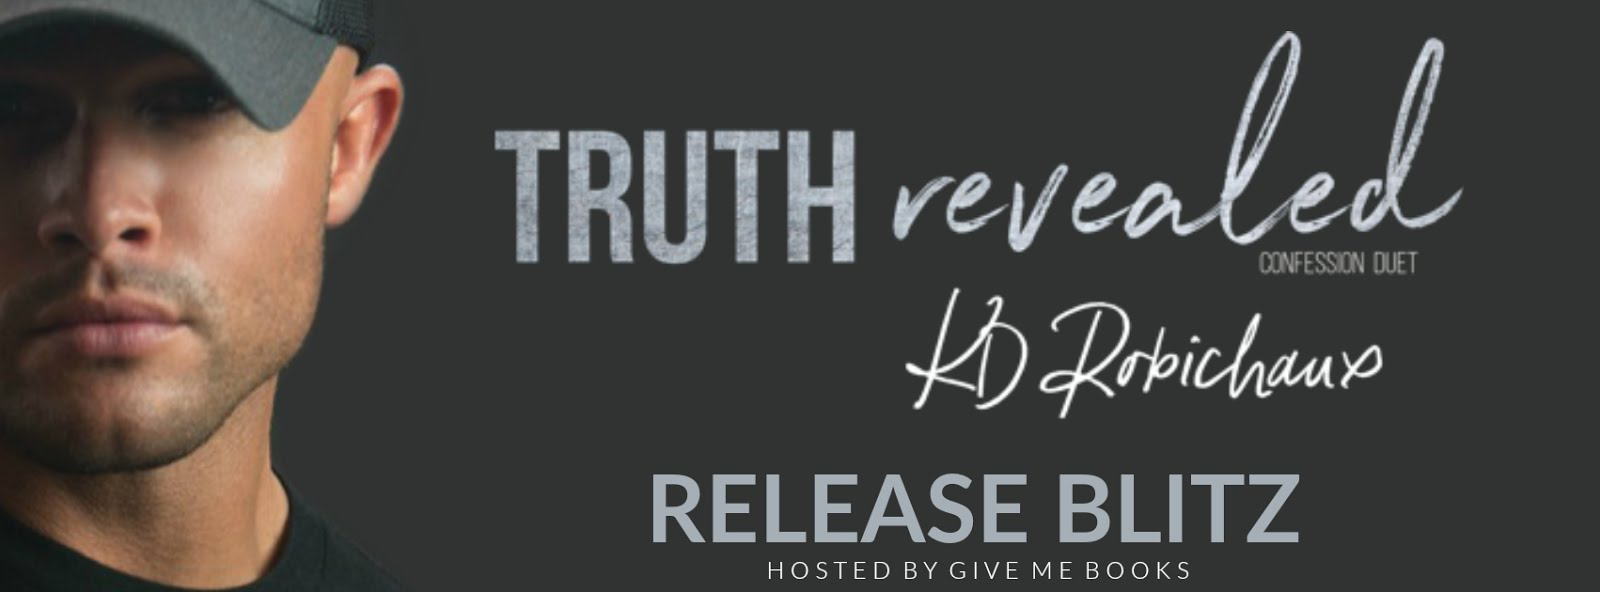 Truth Revealed Release Blitz